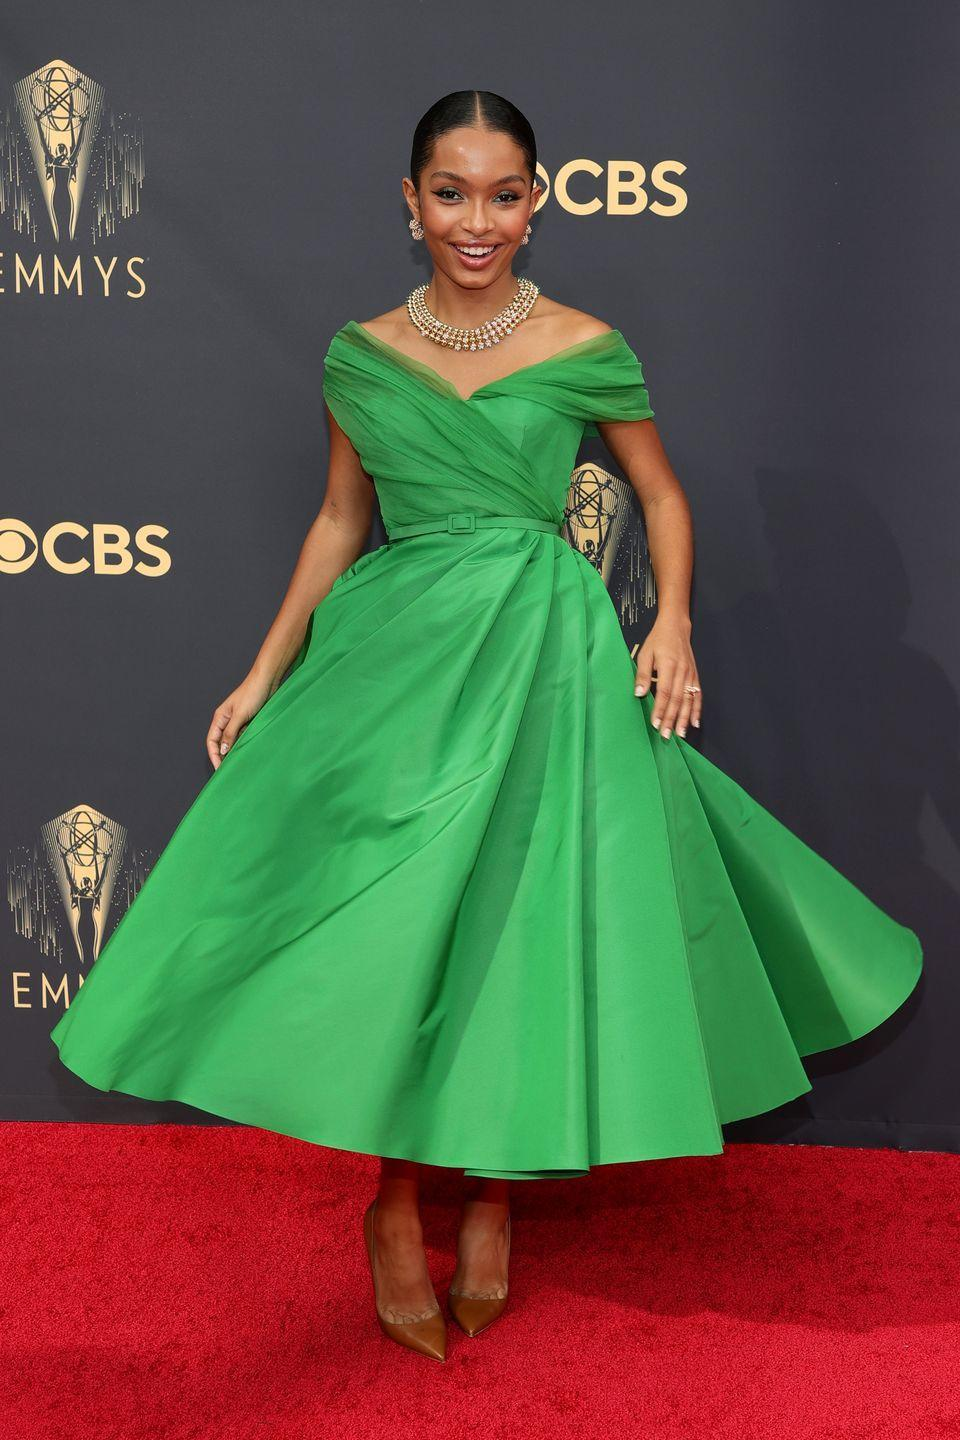 <p>Yara Shahidi looked like a glamorous Fifties film star in an ankle-length, bright green design by Dior. The actress twirled on the red carpet in the timeless design, teaming her look with a chunky Cartier necklace and brown pointed court shoes.</p>